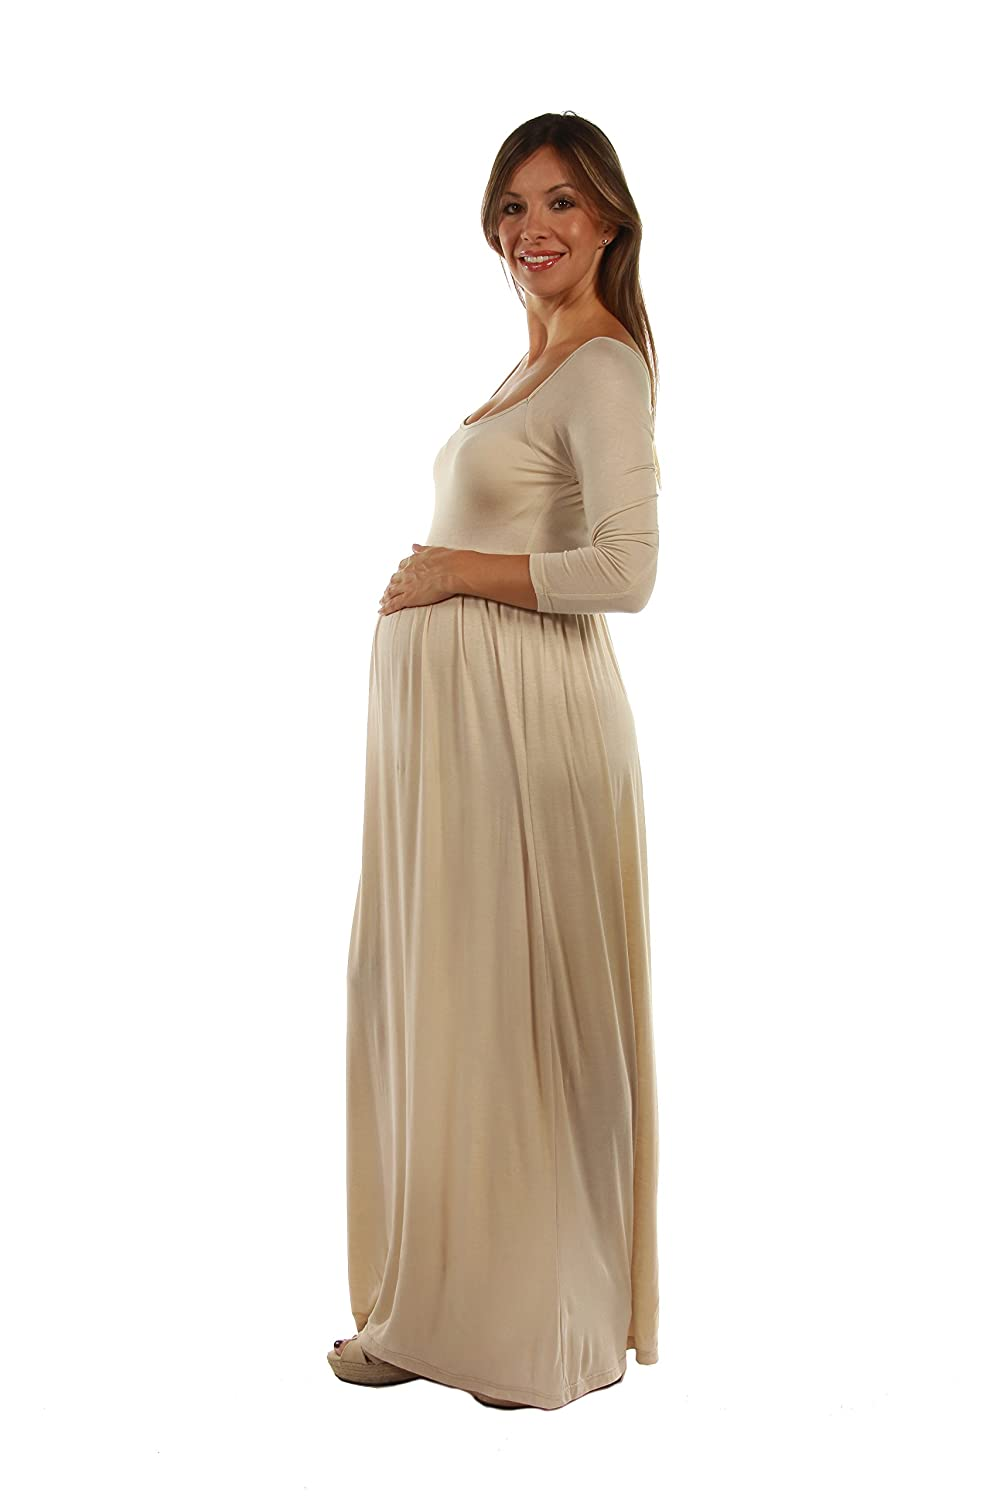 3df980edc0baf 24seven Comfort Apparel Womens Maternity Long Sleeve Empire Waist Square  Neckline Maxi Dress - Made in ...